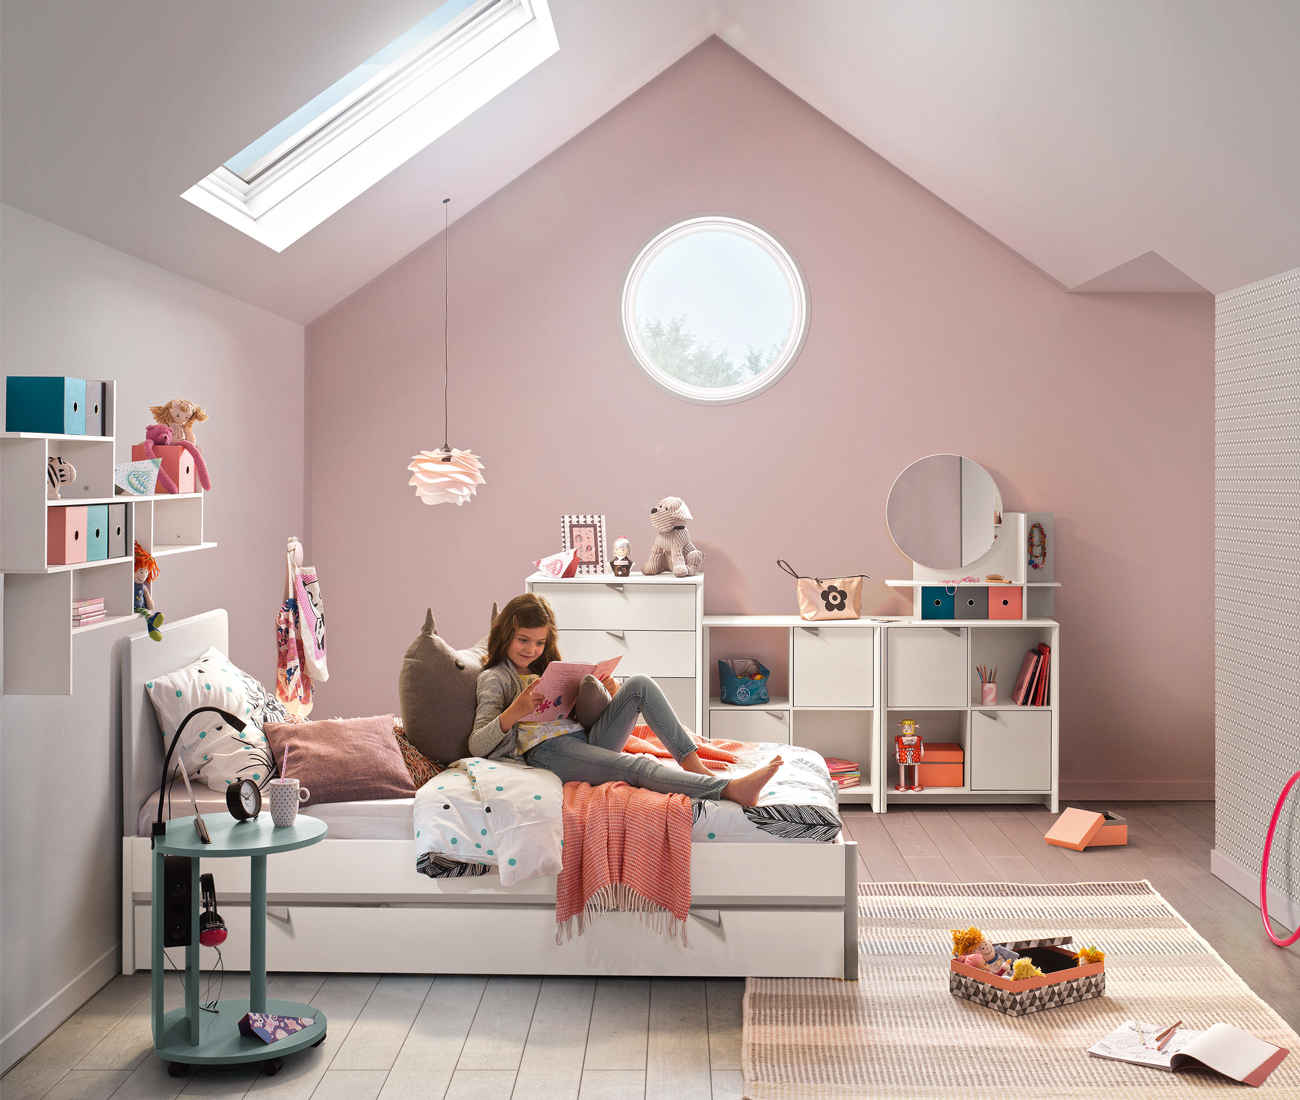 Furniture Atore: The Best Modern Kids Furniture Stores In Toronto